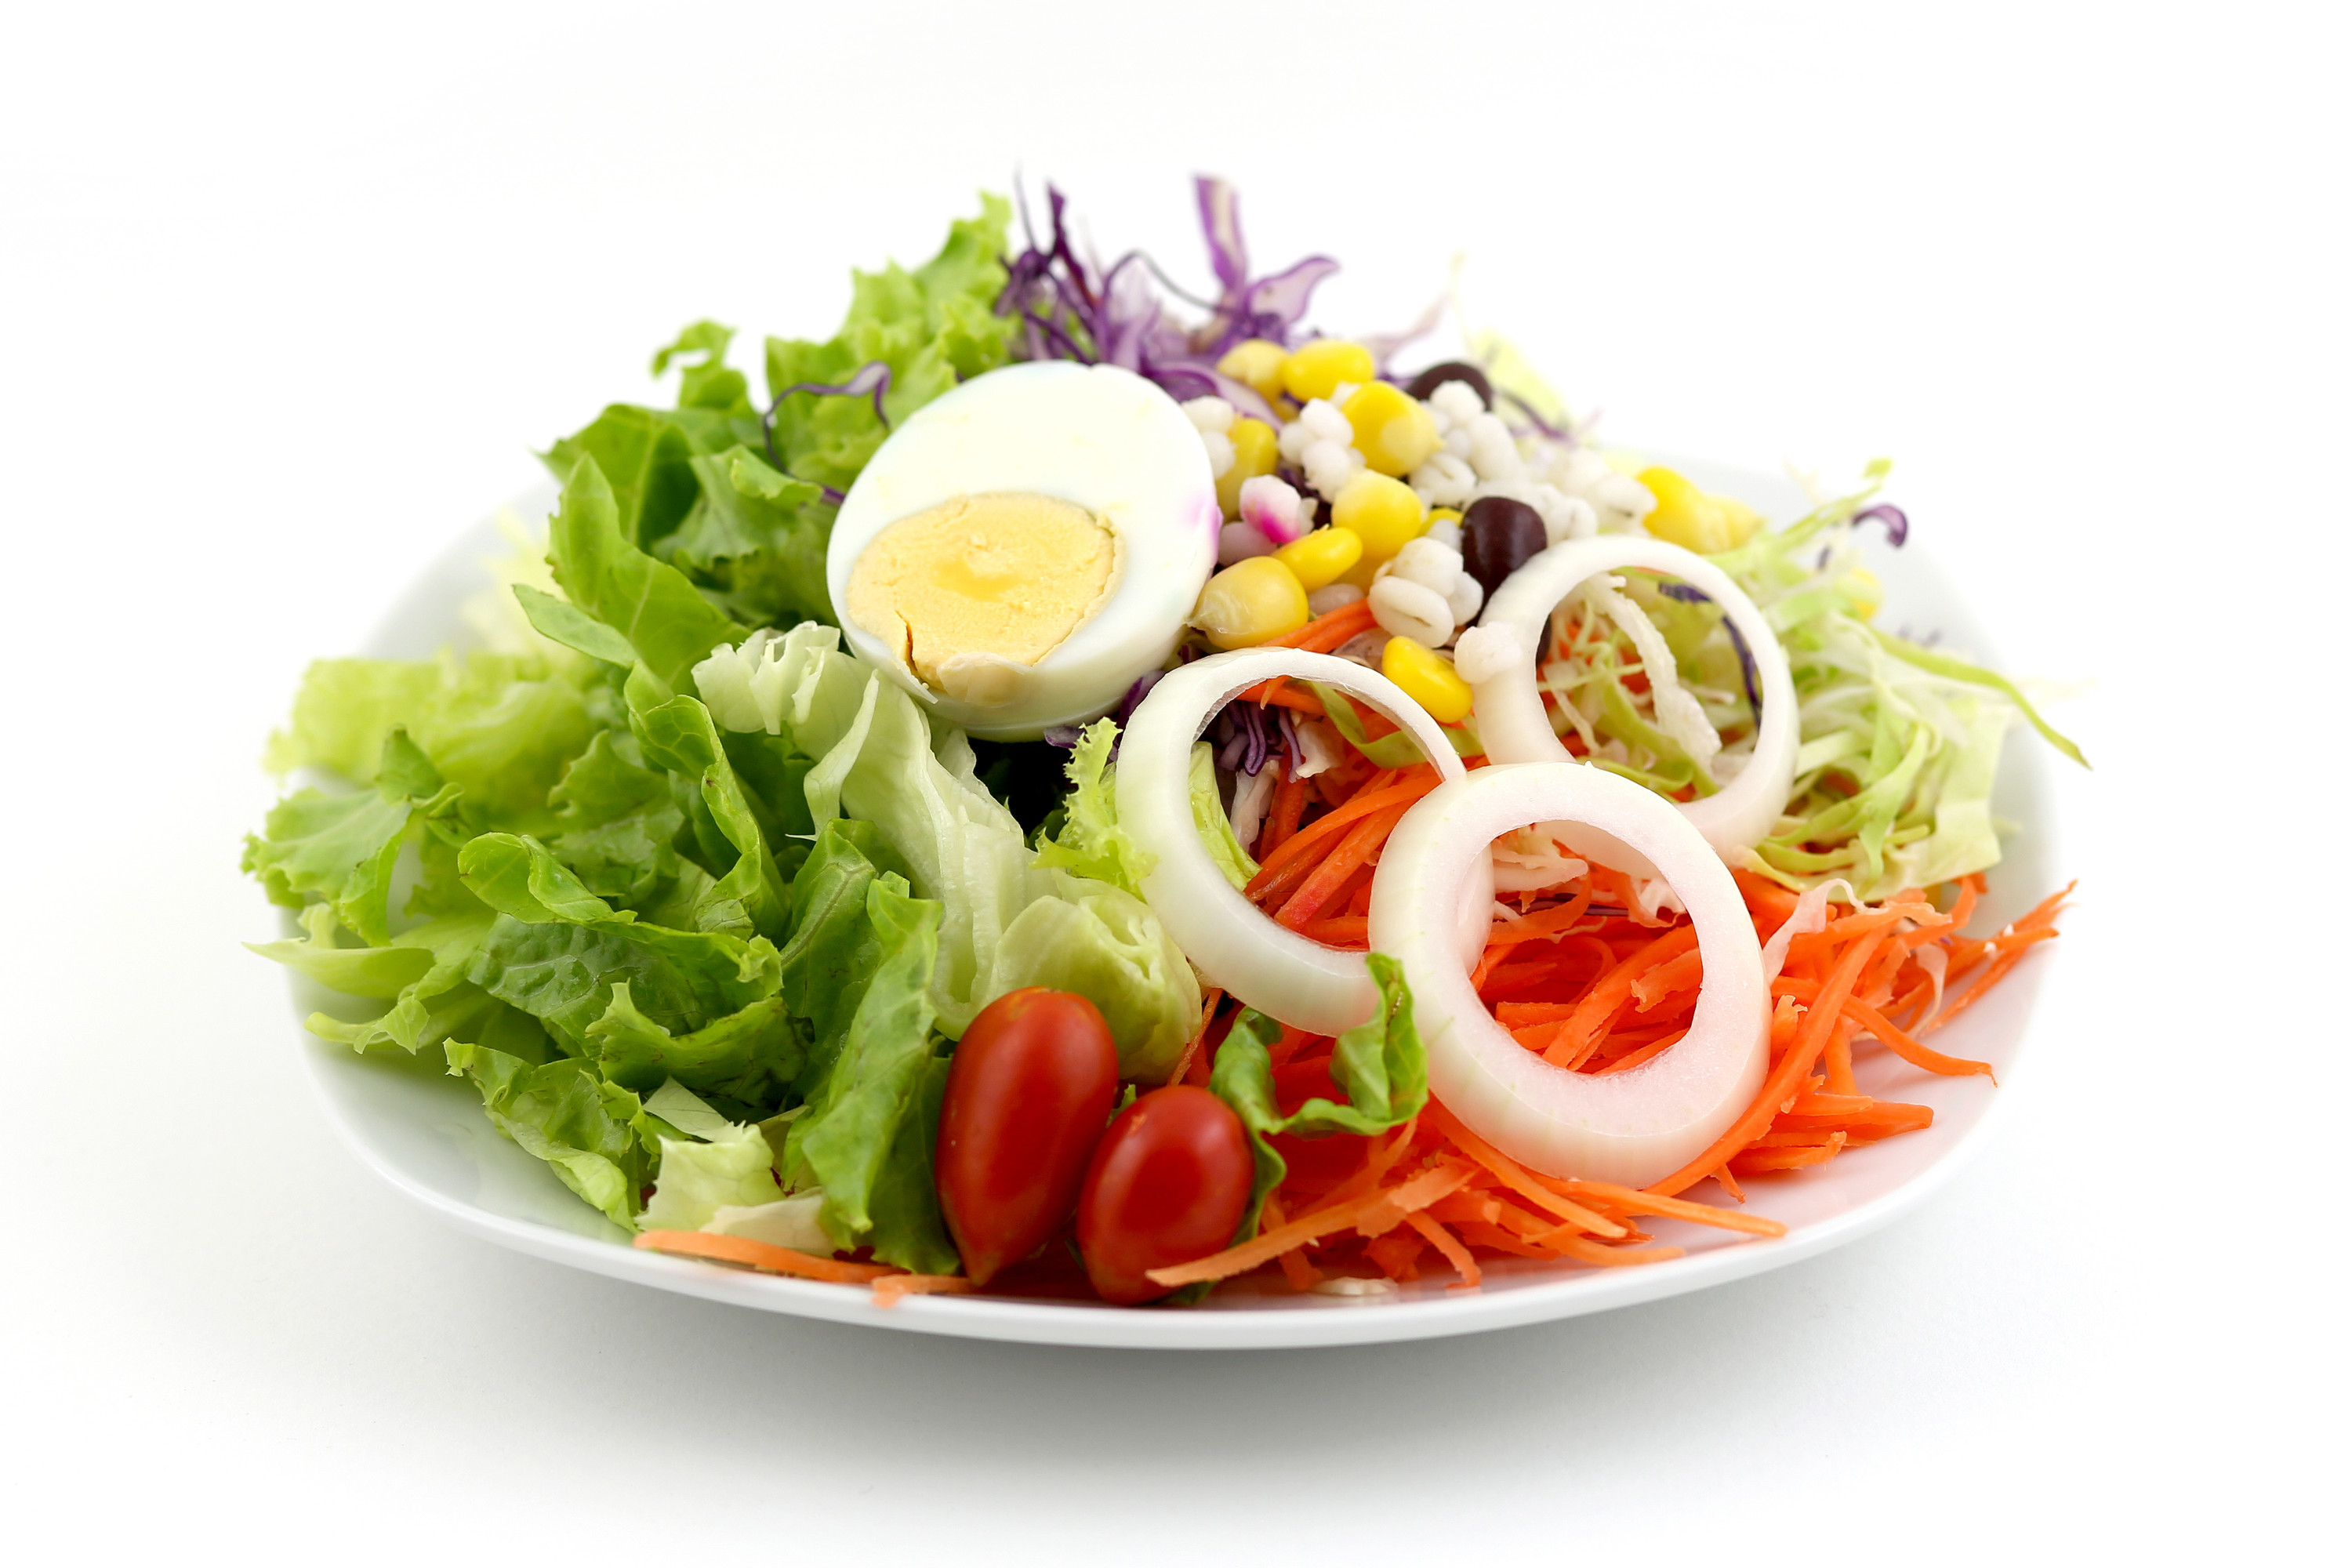 Chef's Salad © Can Stock Photo / gongzstudio